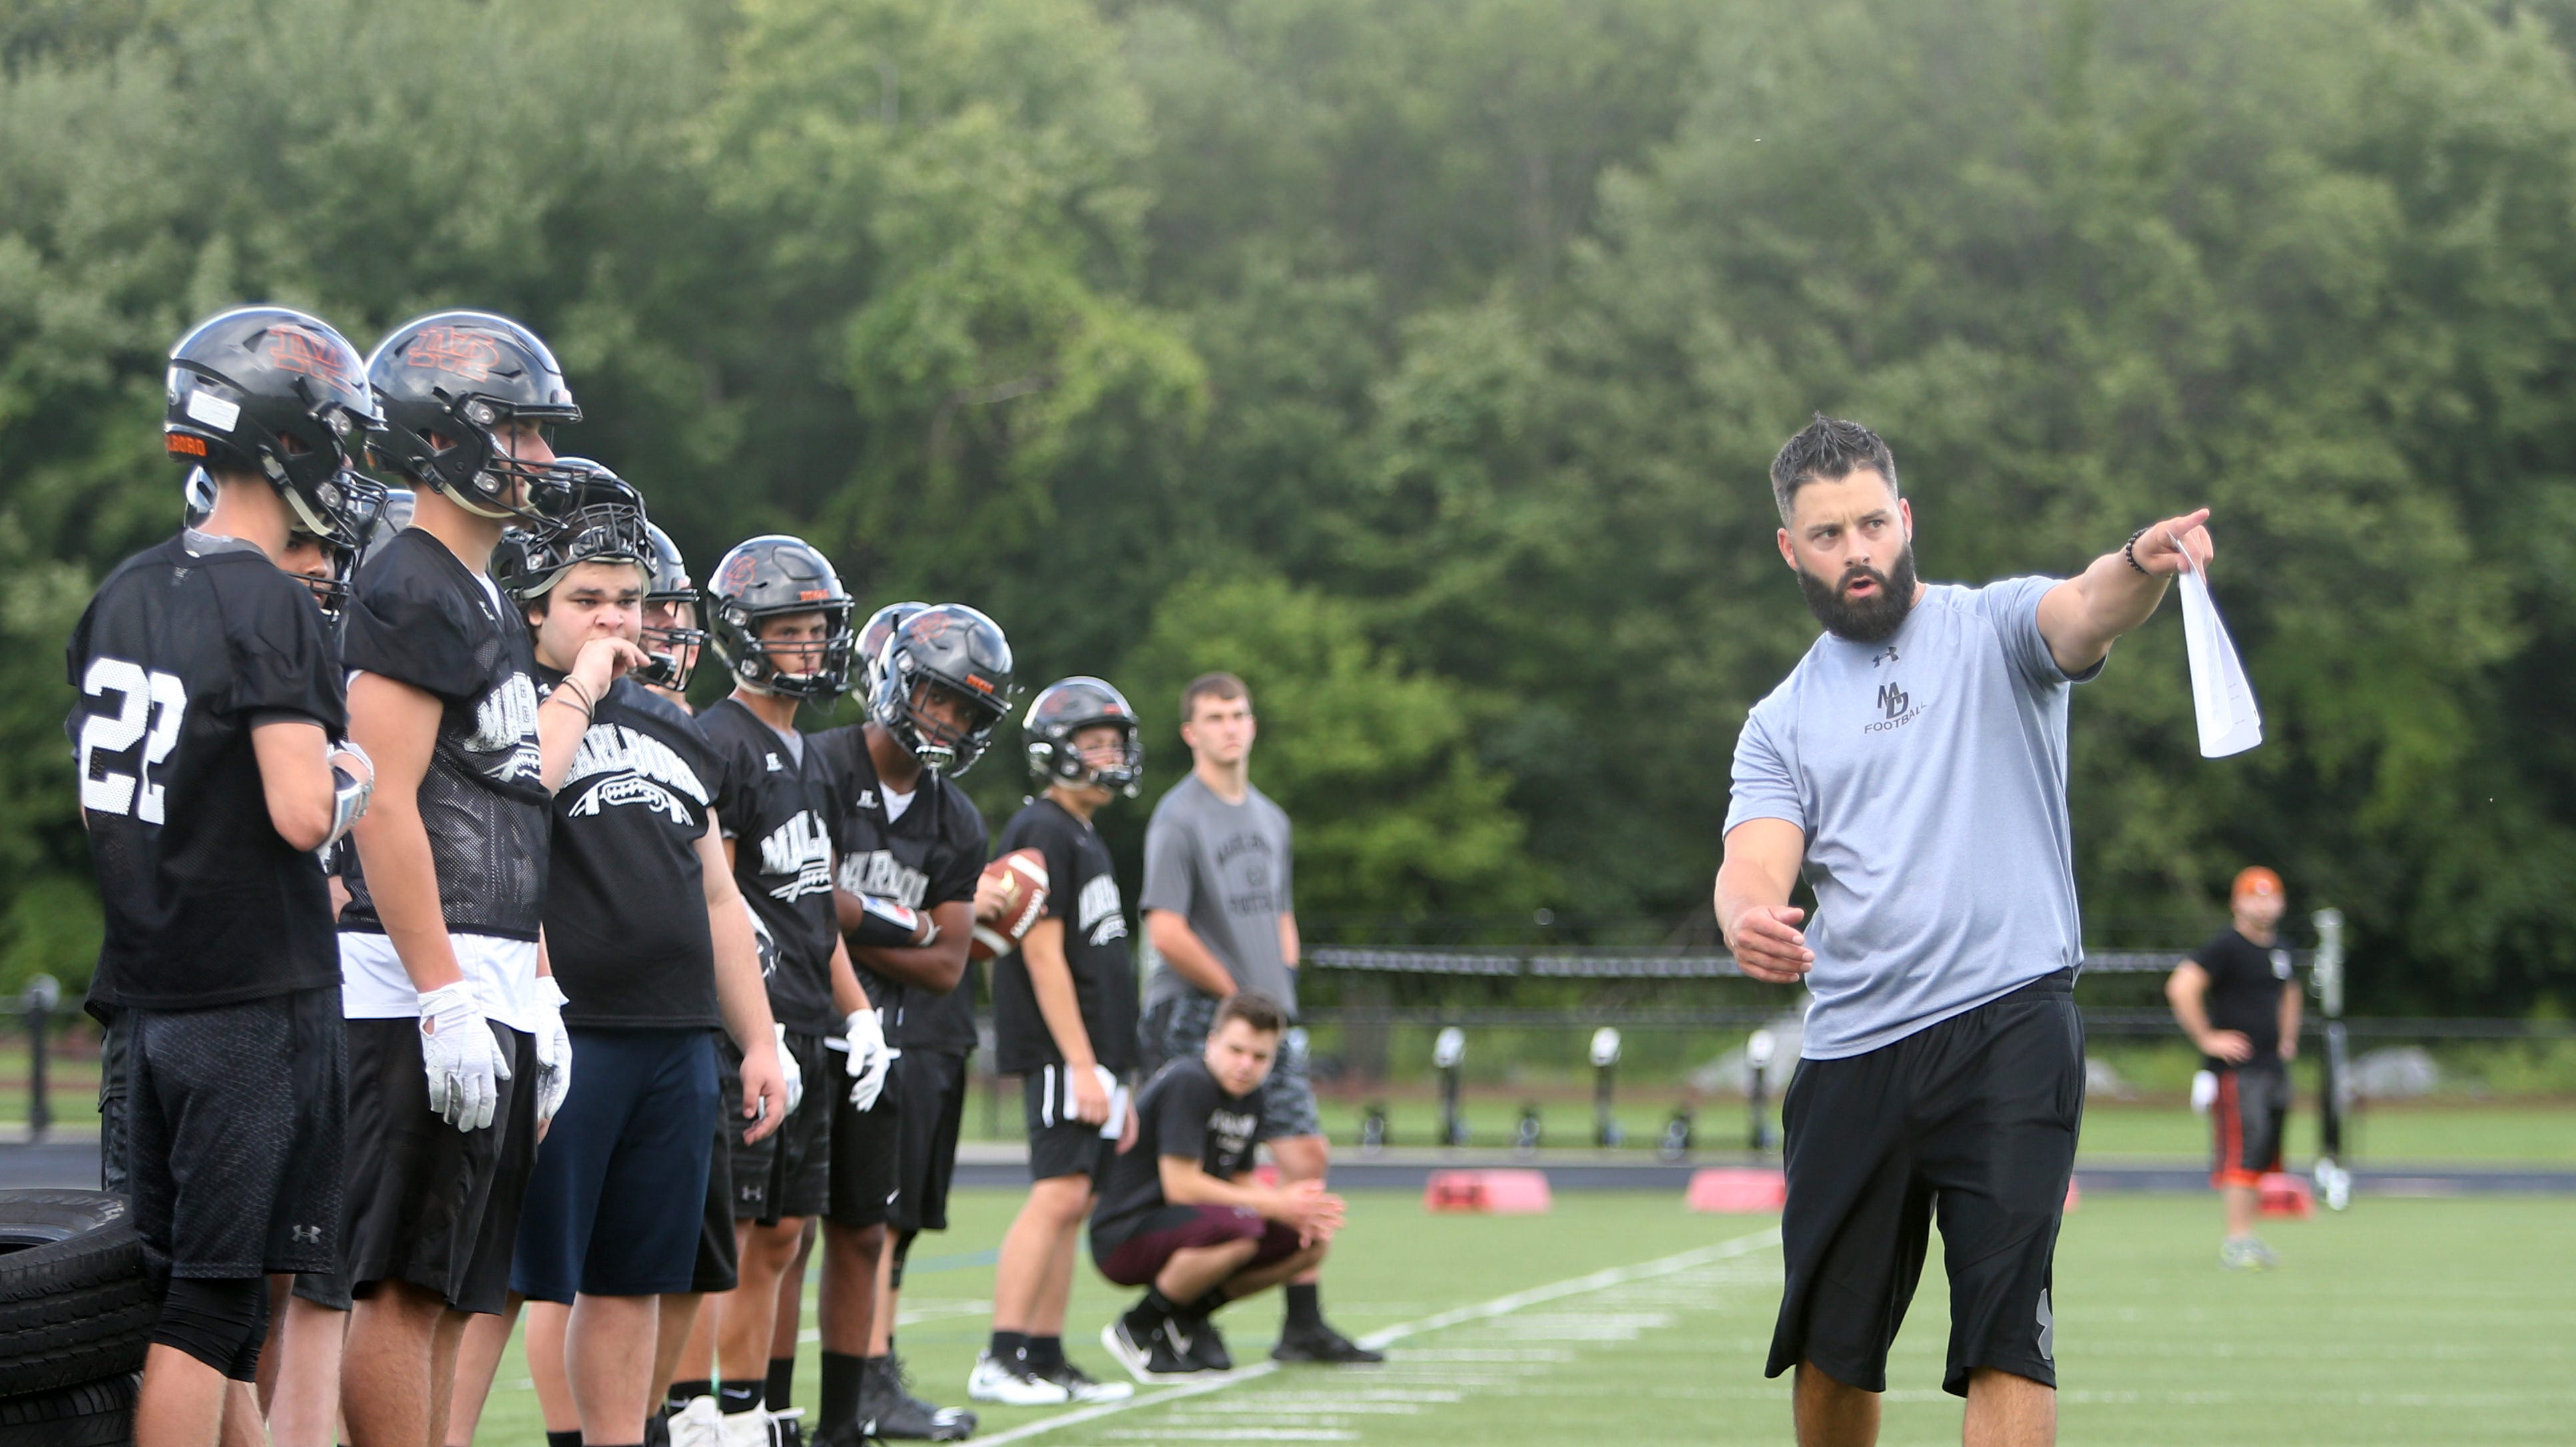 Football head coach, Bryan Beck explains a drill to his players during Tuesday's pre-season practice at Marlboro High School on August 14, 2018.